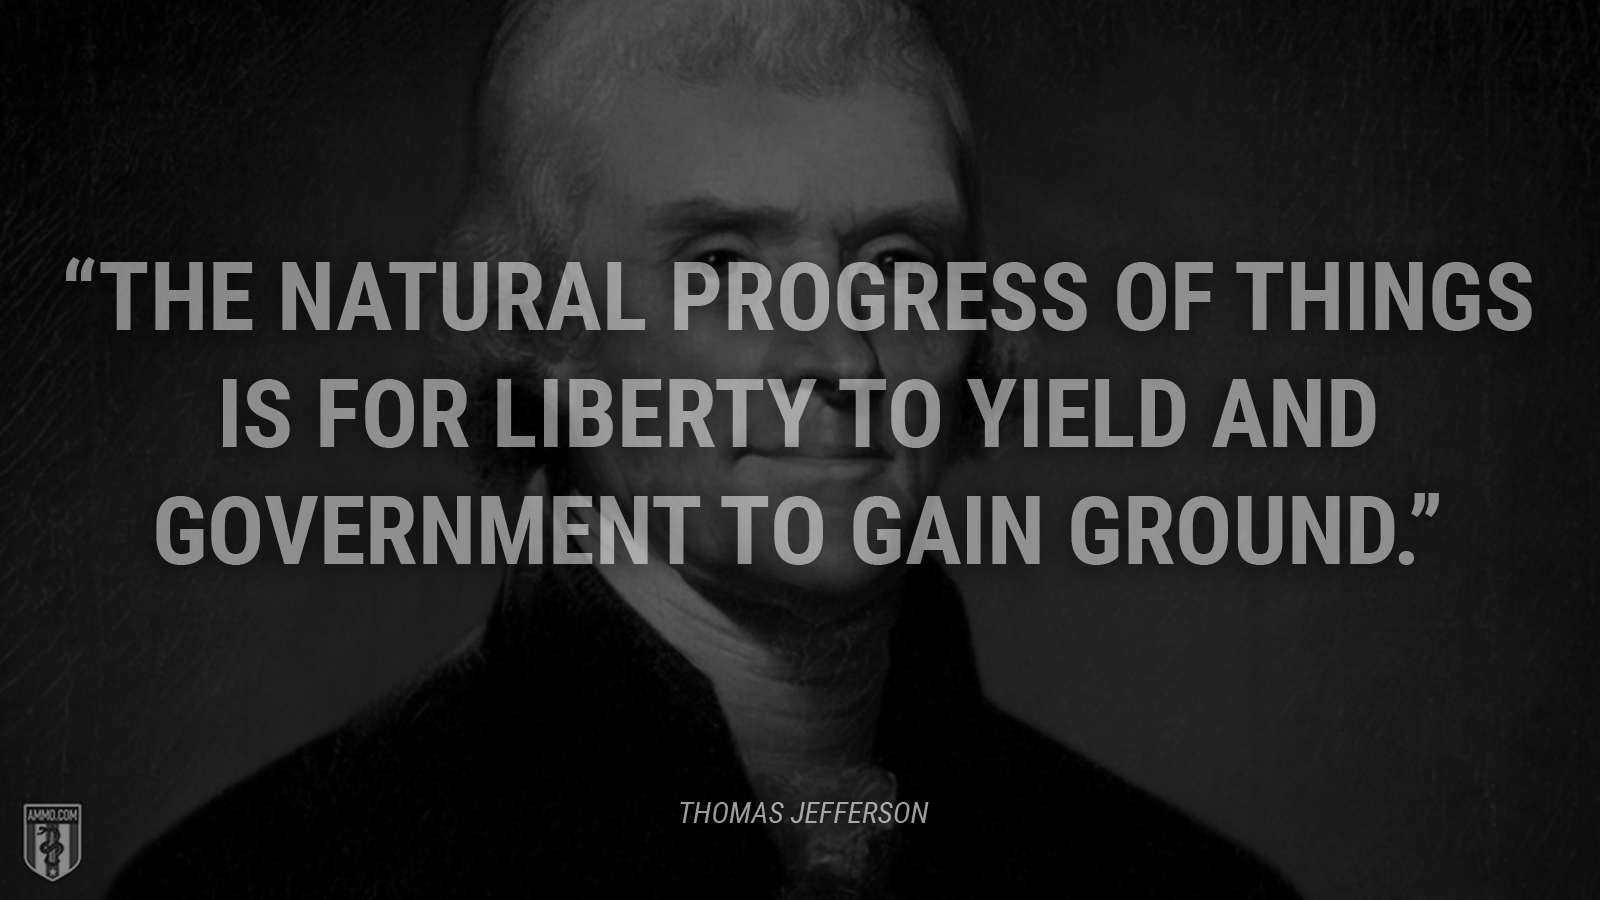 """The natural progress of things is for liberty to yield and government to gain ground."" - Thomas Jefferson"